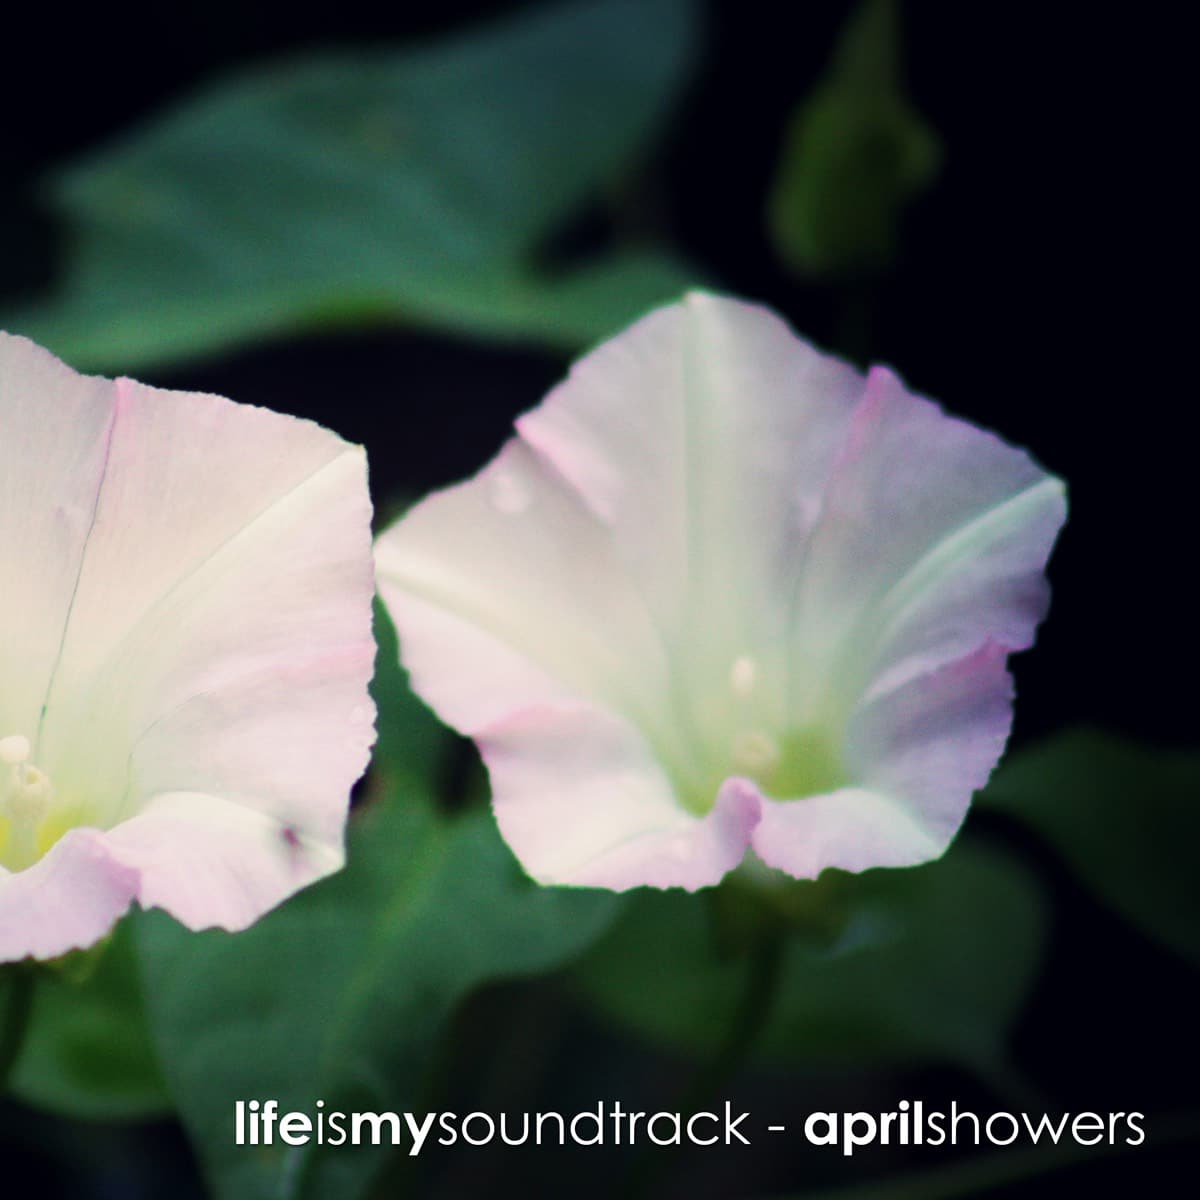 The album April Showers by Life Is My Soundtrack - Light, delicate, minimal piano melodies